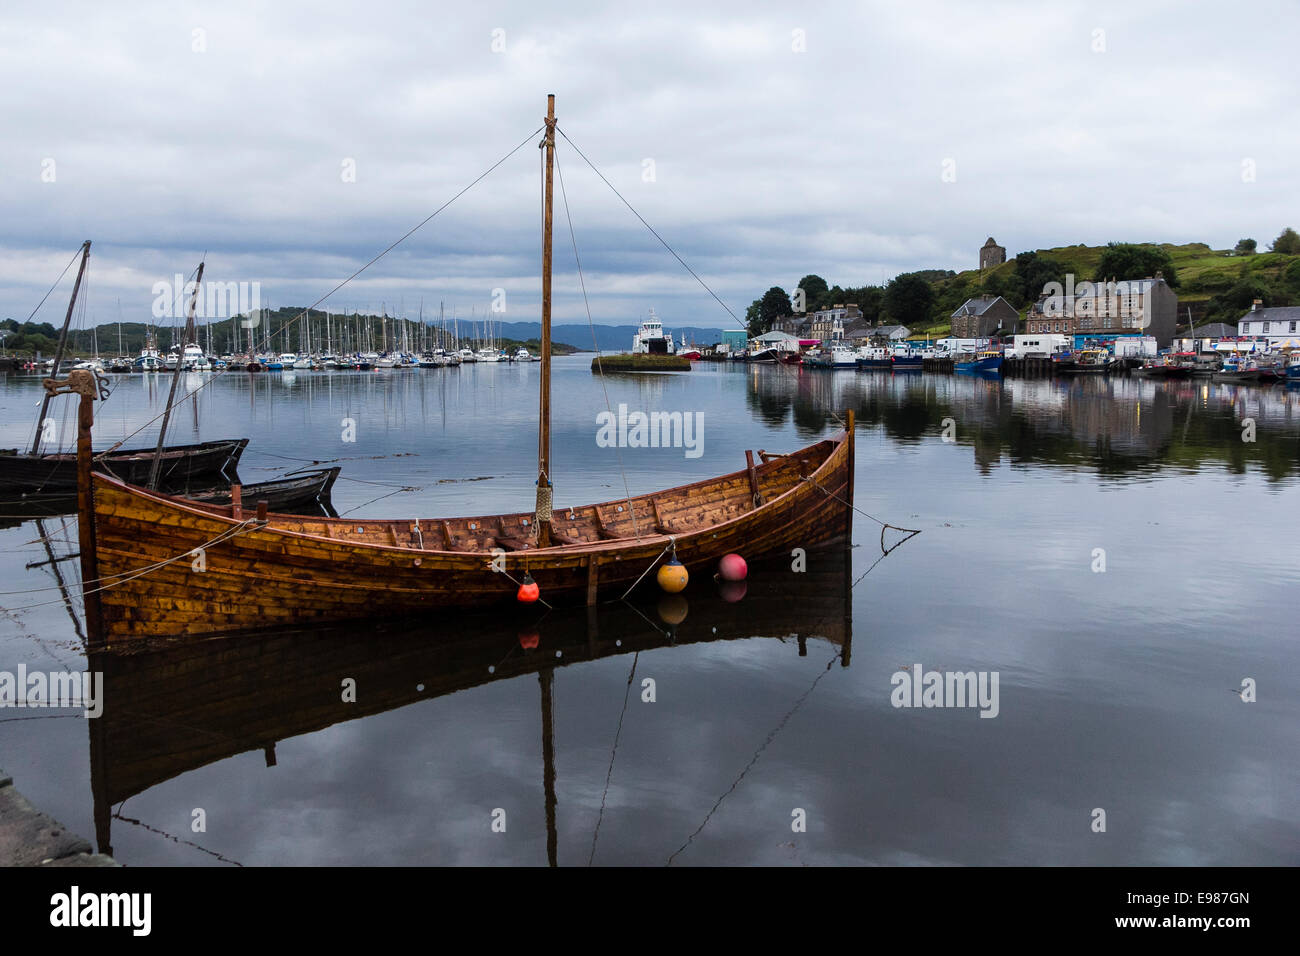 A replica of a wooden hulled Viking longship in Tarbert Harbour, Kintyre, Argyll and Bute, Scotland - Stock Image